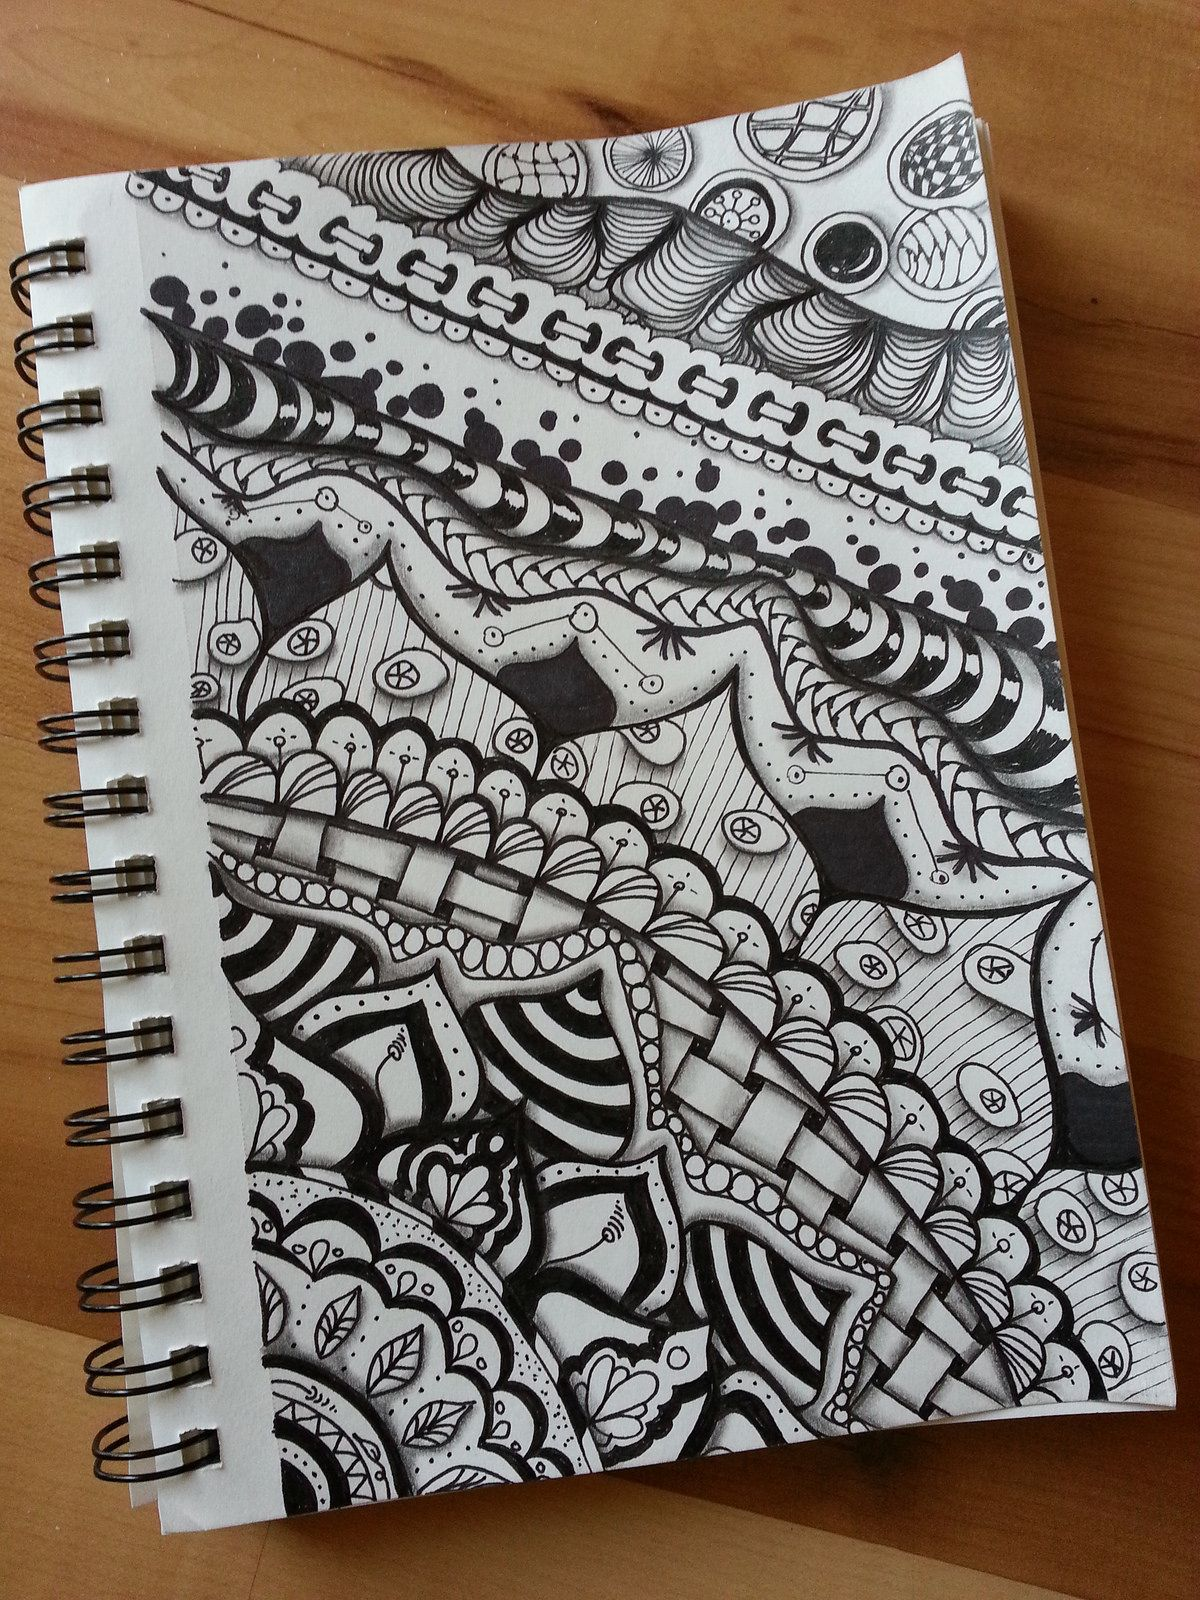 Zentangledoodle i did last night doodles